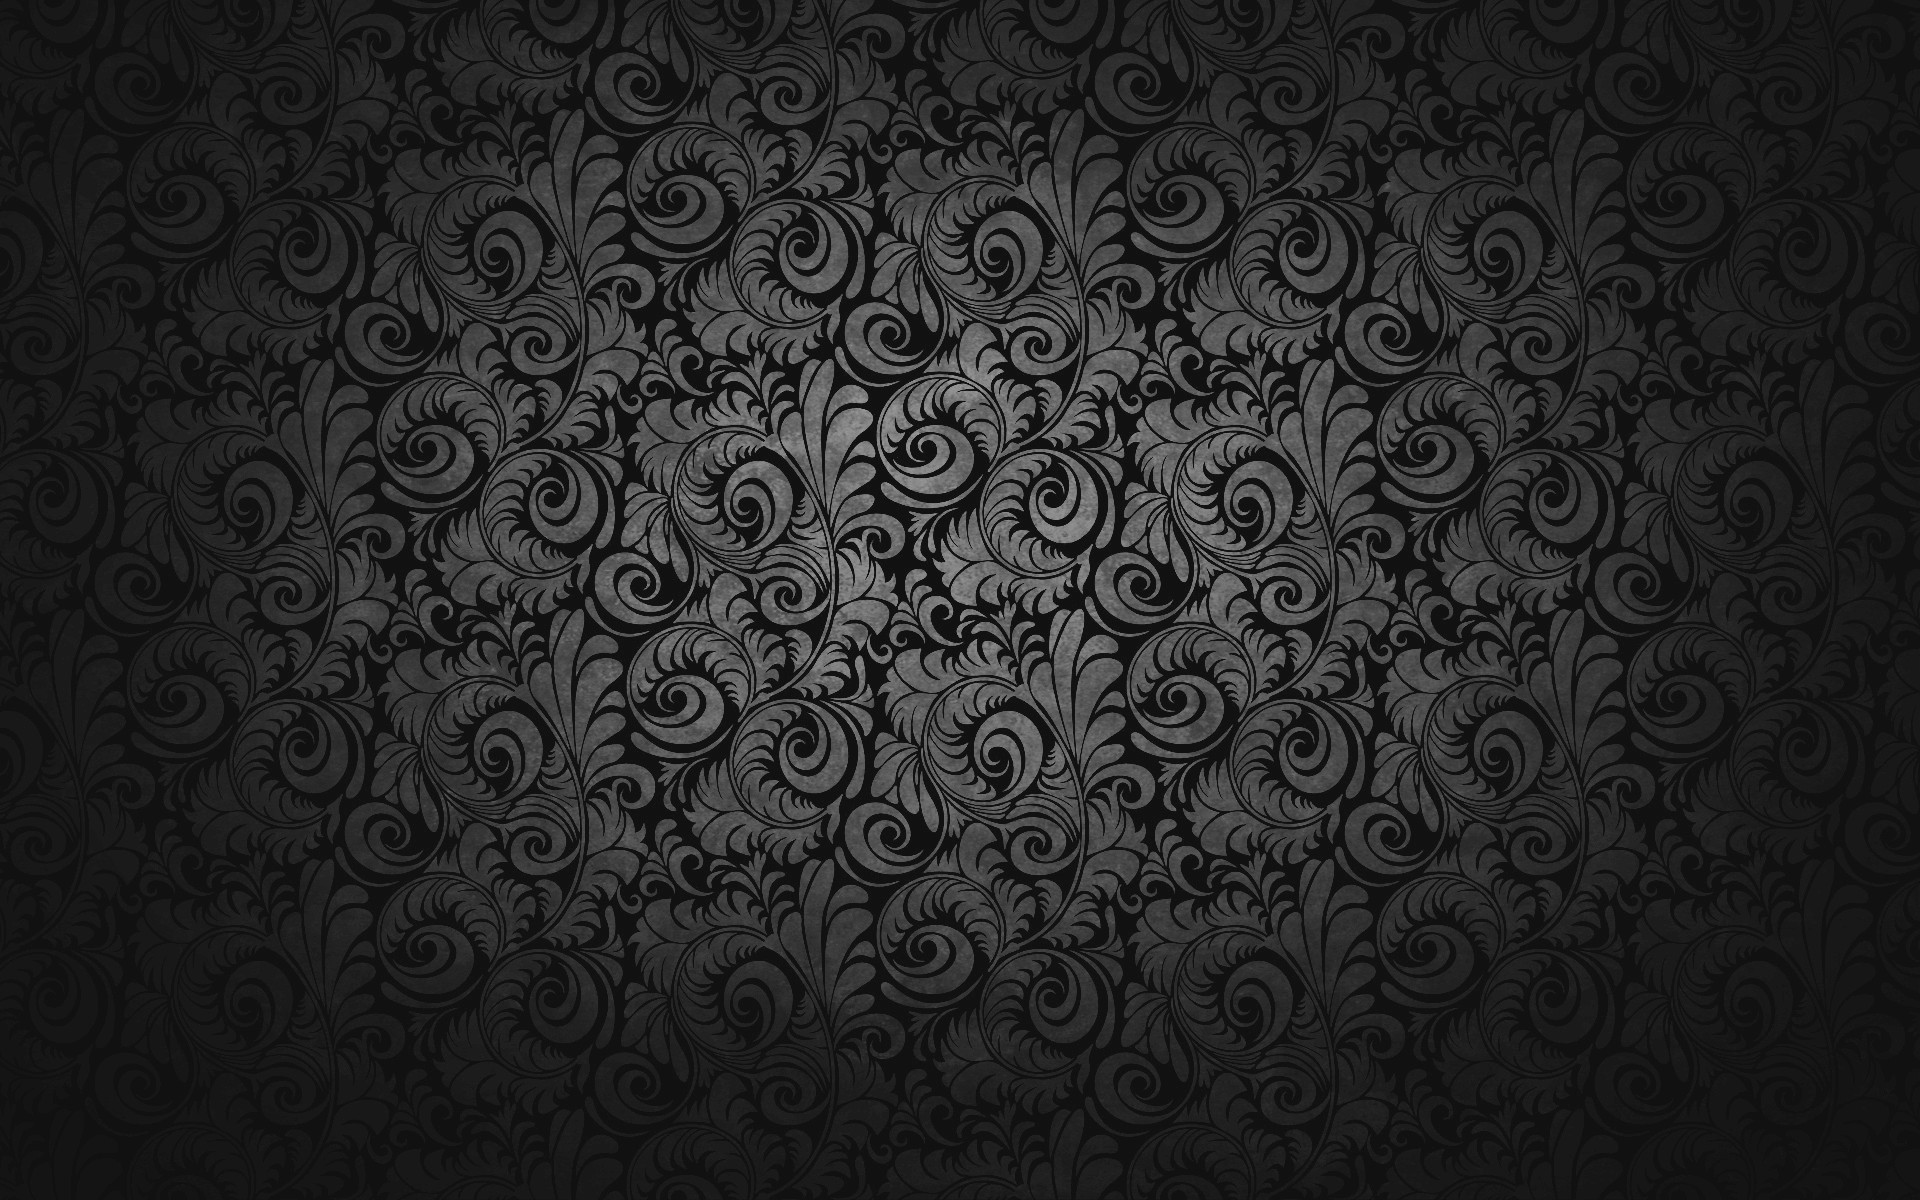 black-wallpaper-28.jpg